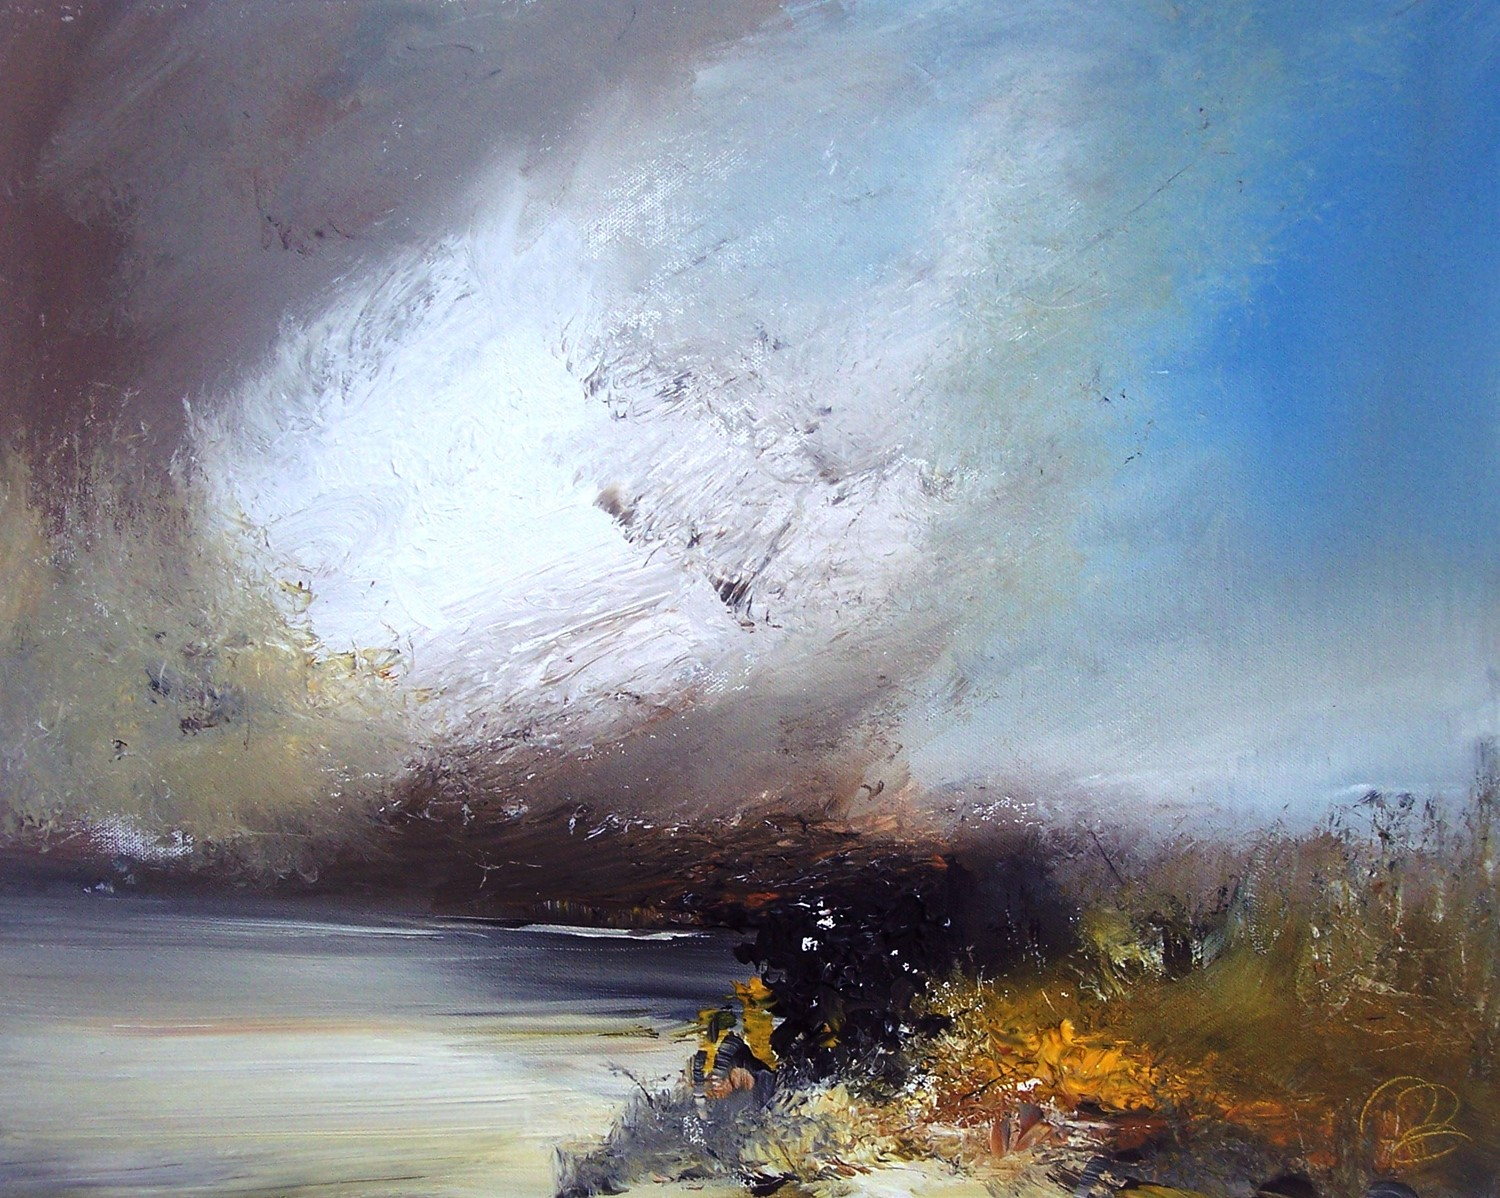 'Swelling Clouds' by artist Rosanne Barr